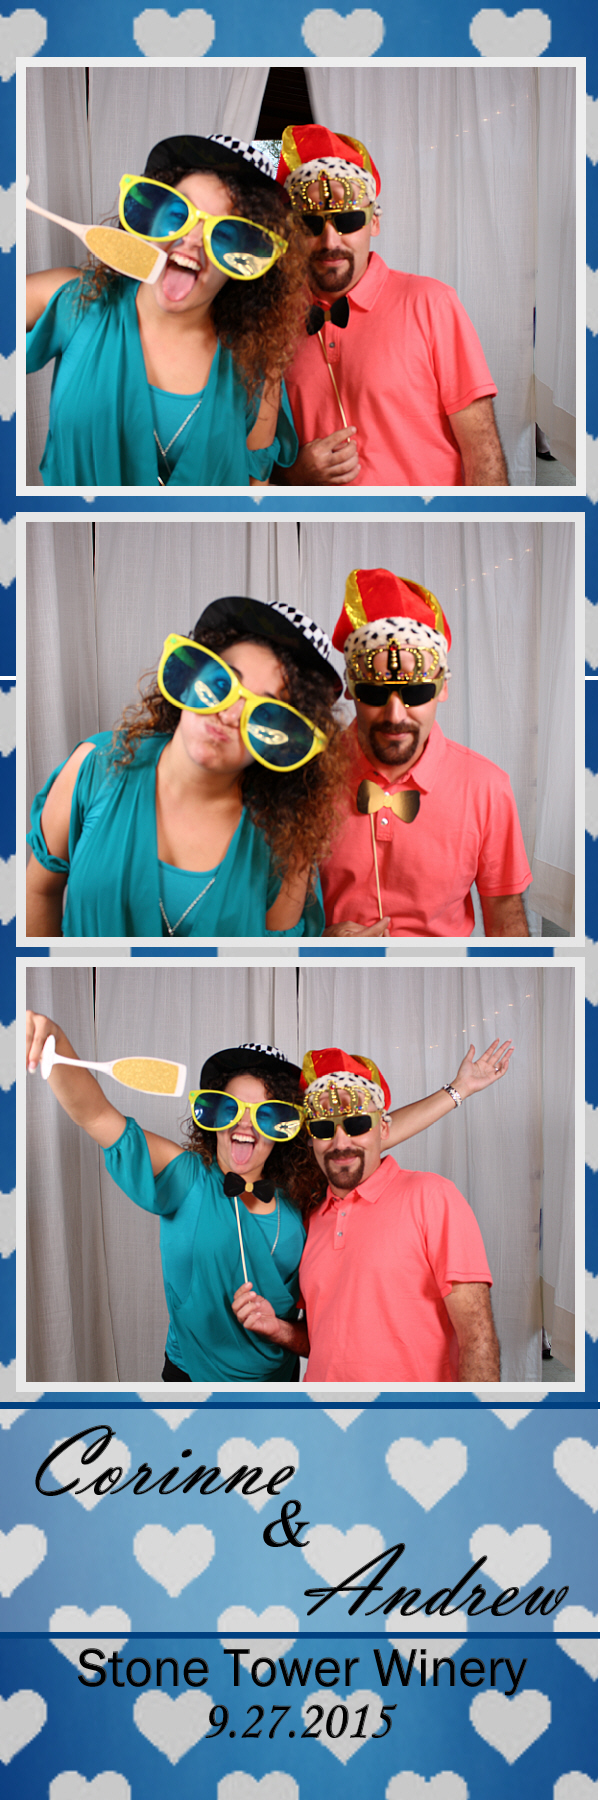 Guest House Events Photo Booth C&A (11).jpg